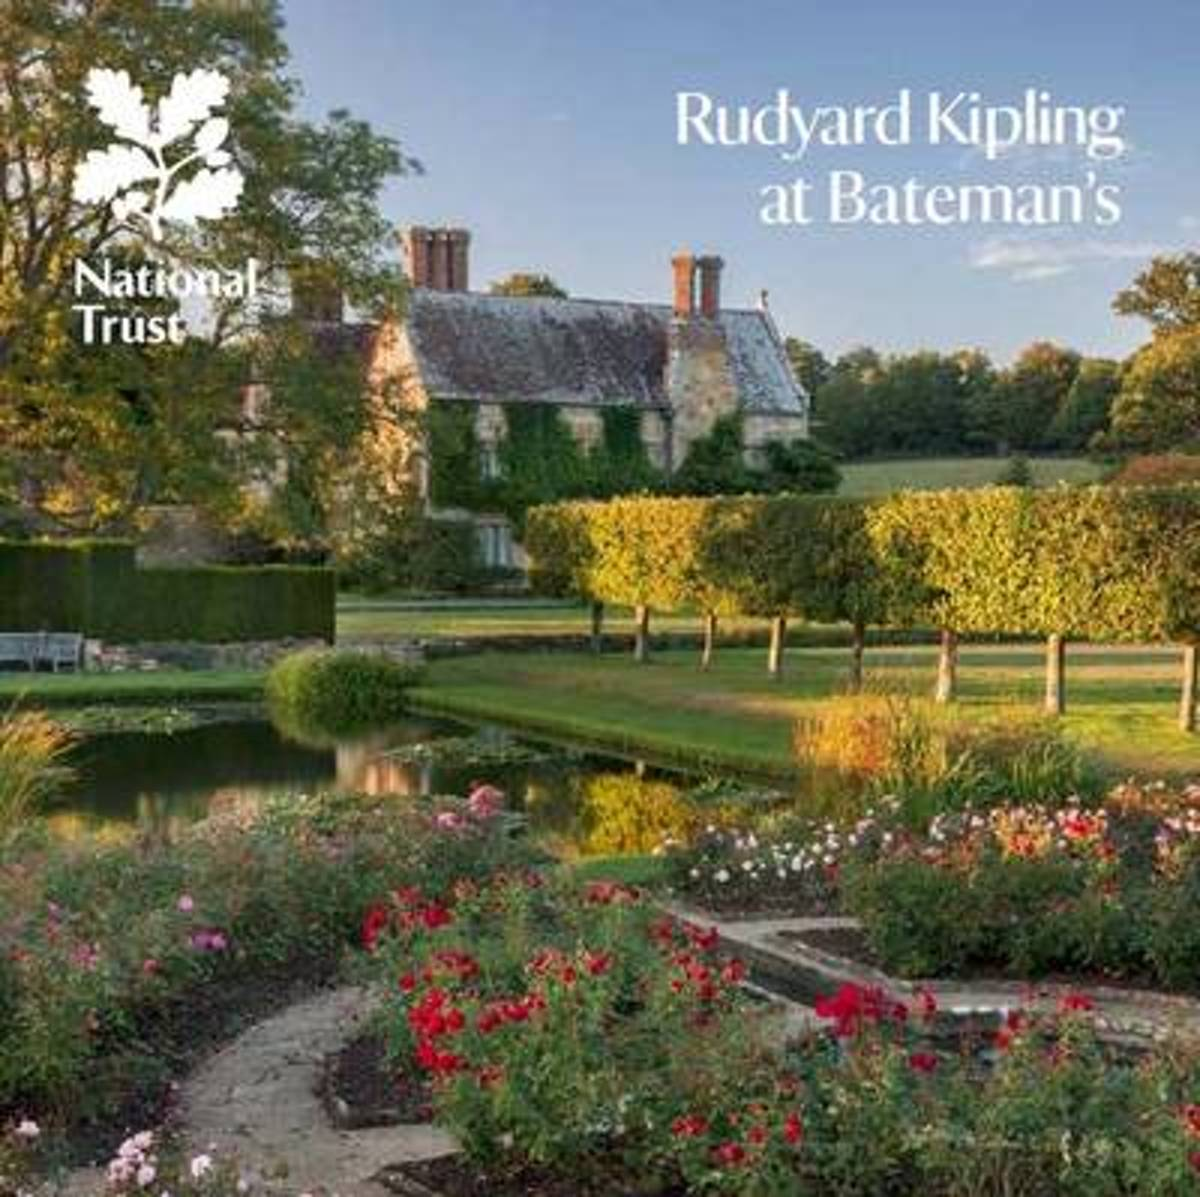 Rudyard Kipling at Bateman's, East Sussex